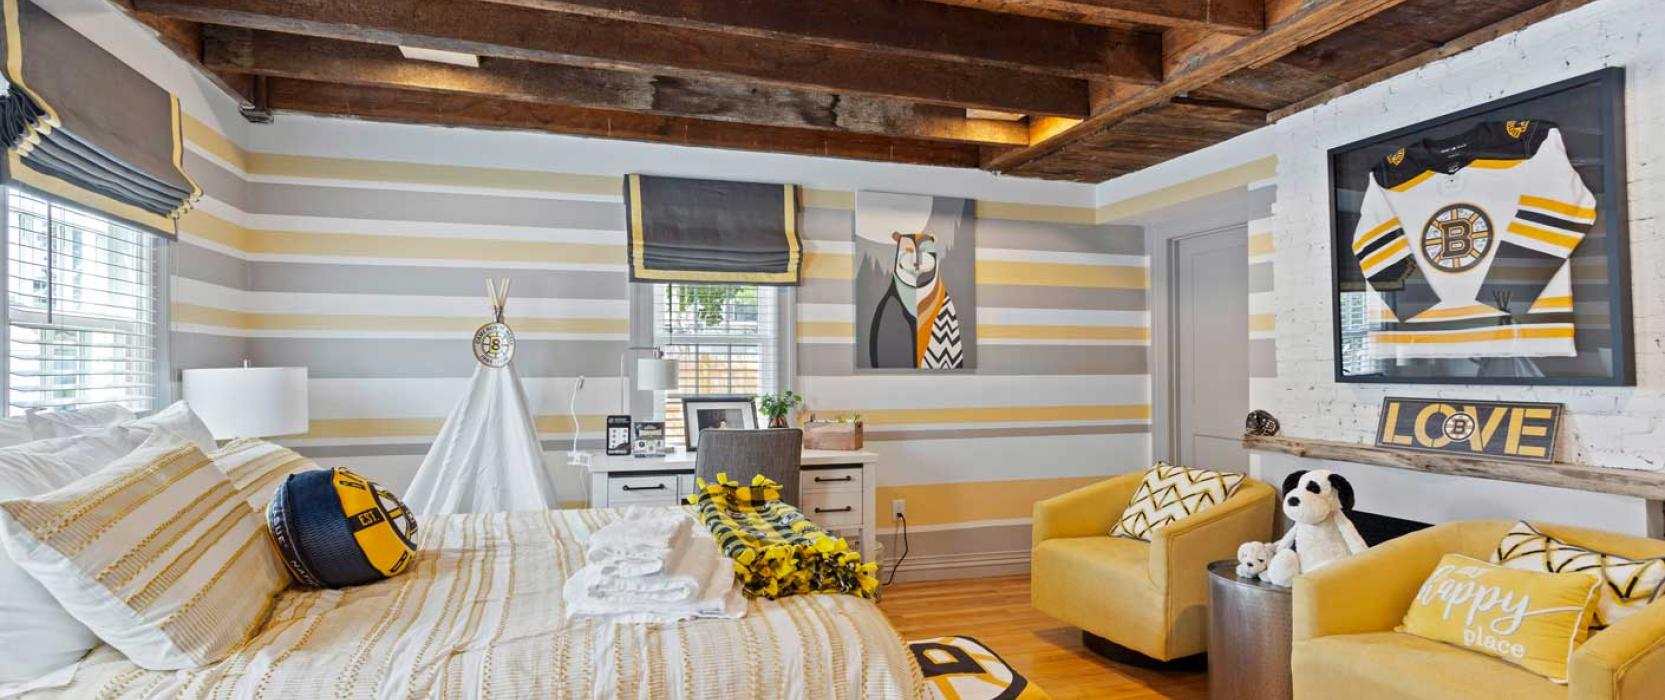 bedroom with wood ceiling and bruins jersey on the wall